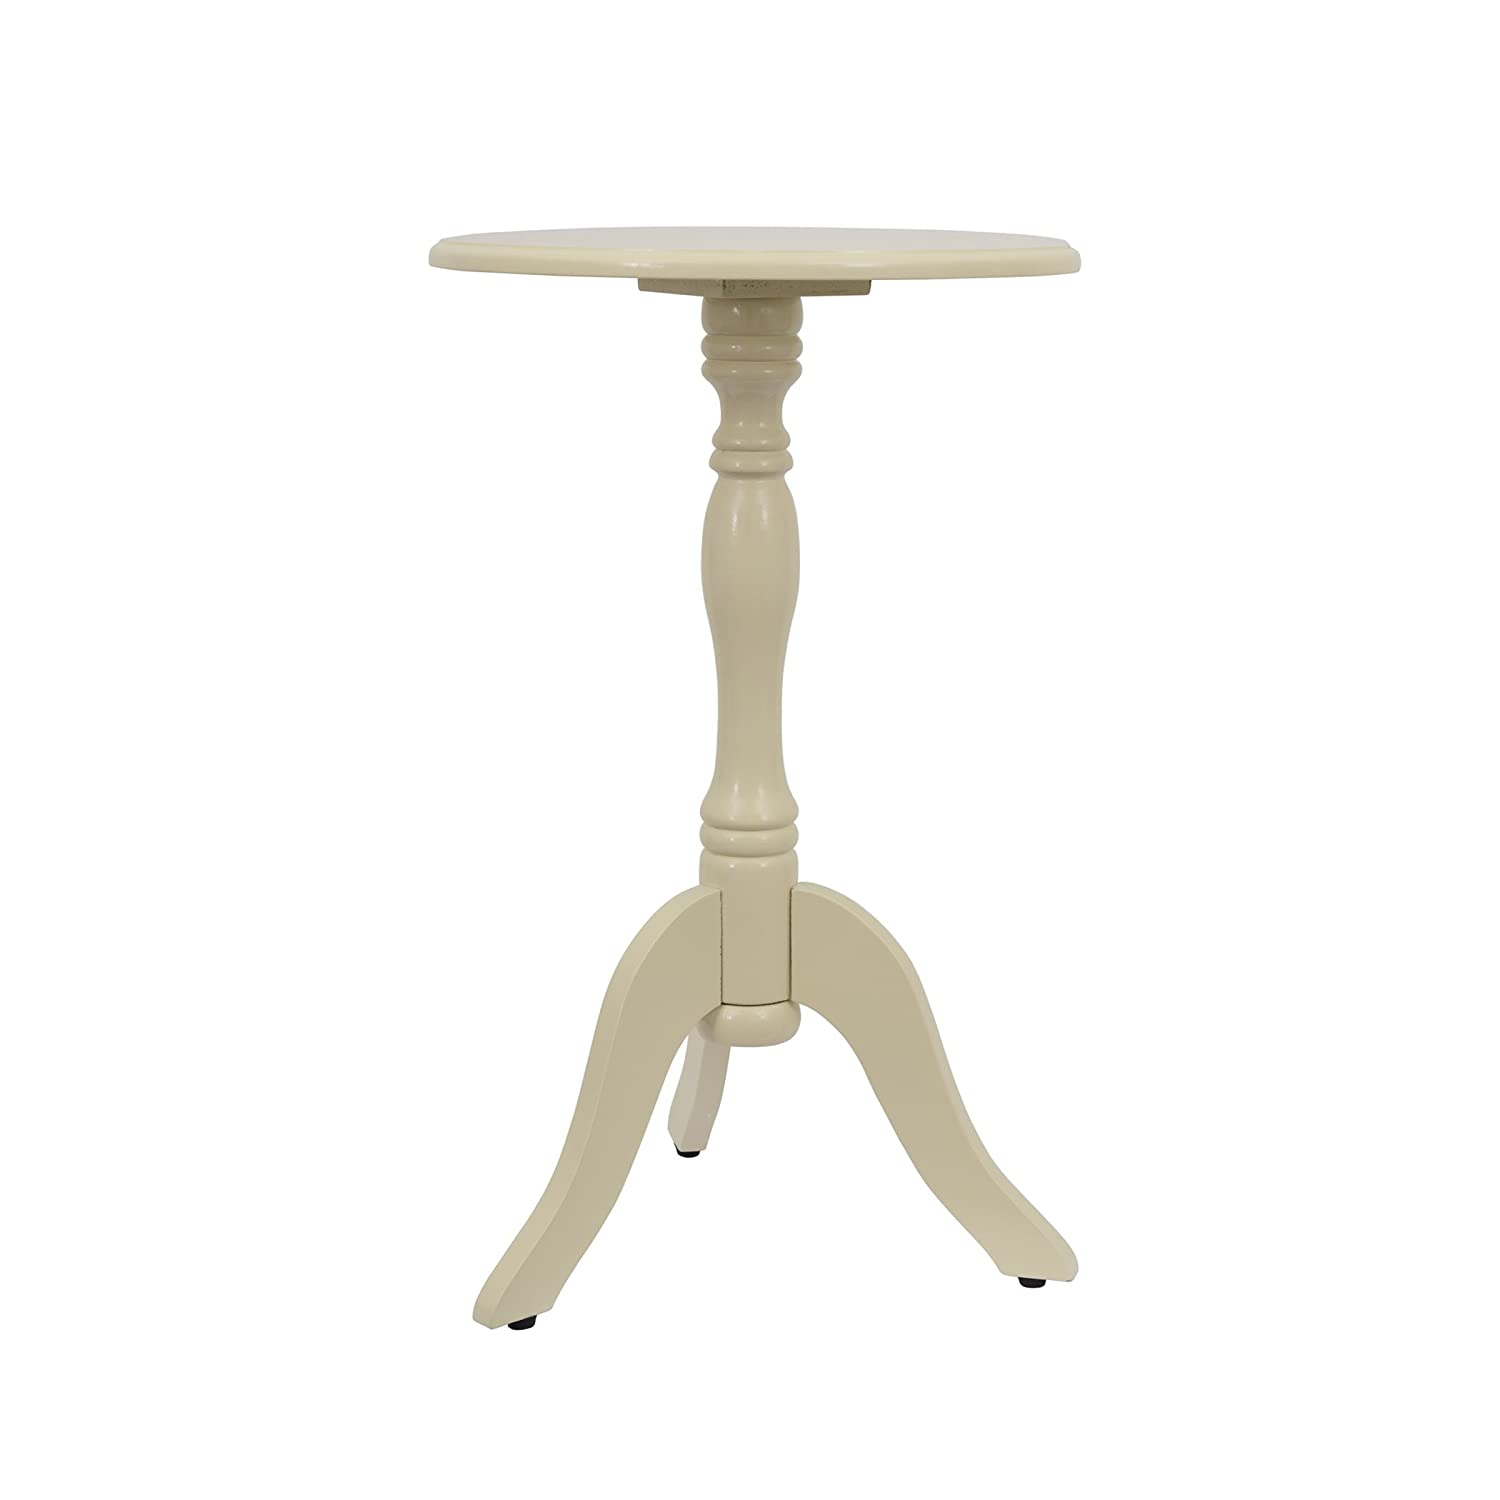 Décor Therapy FR1562 Simplify Pedestal Accent Table, Buttermilk